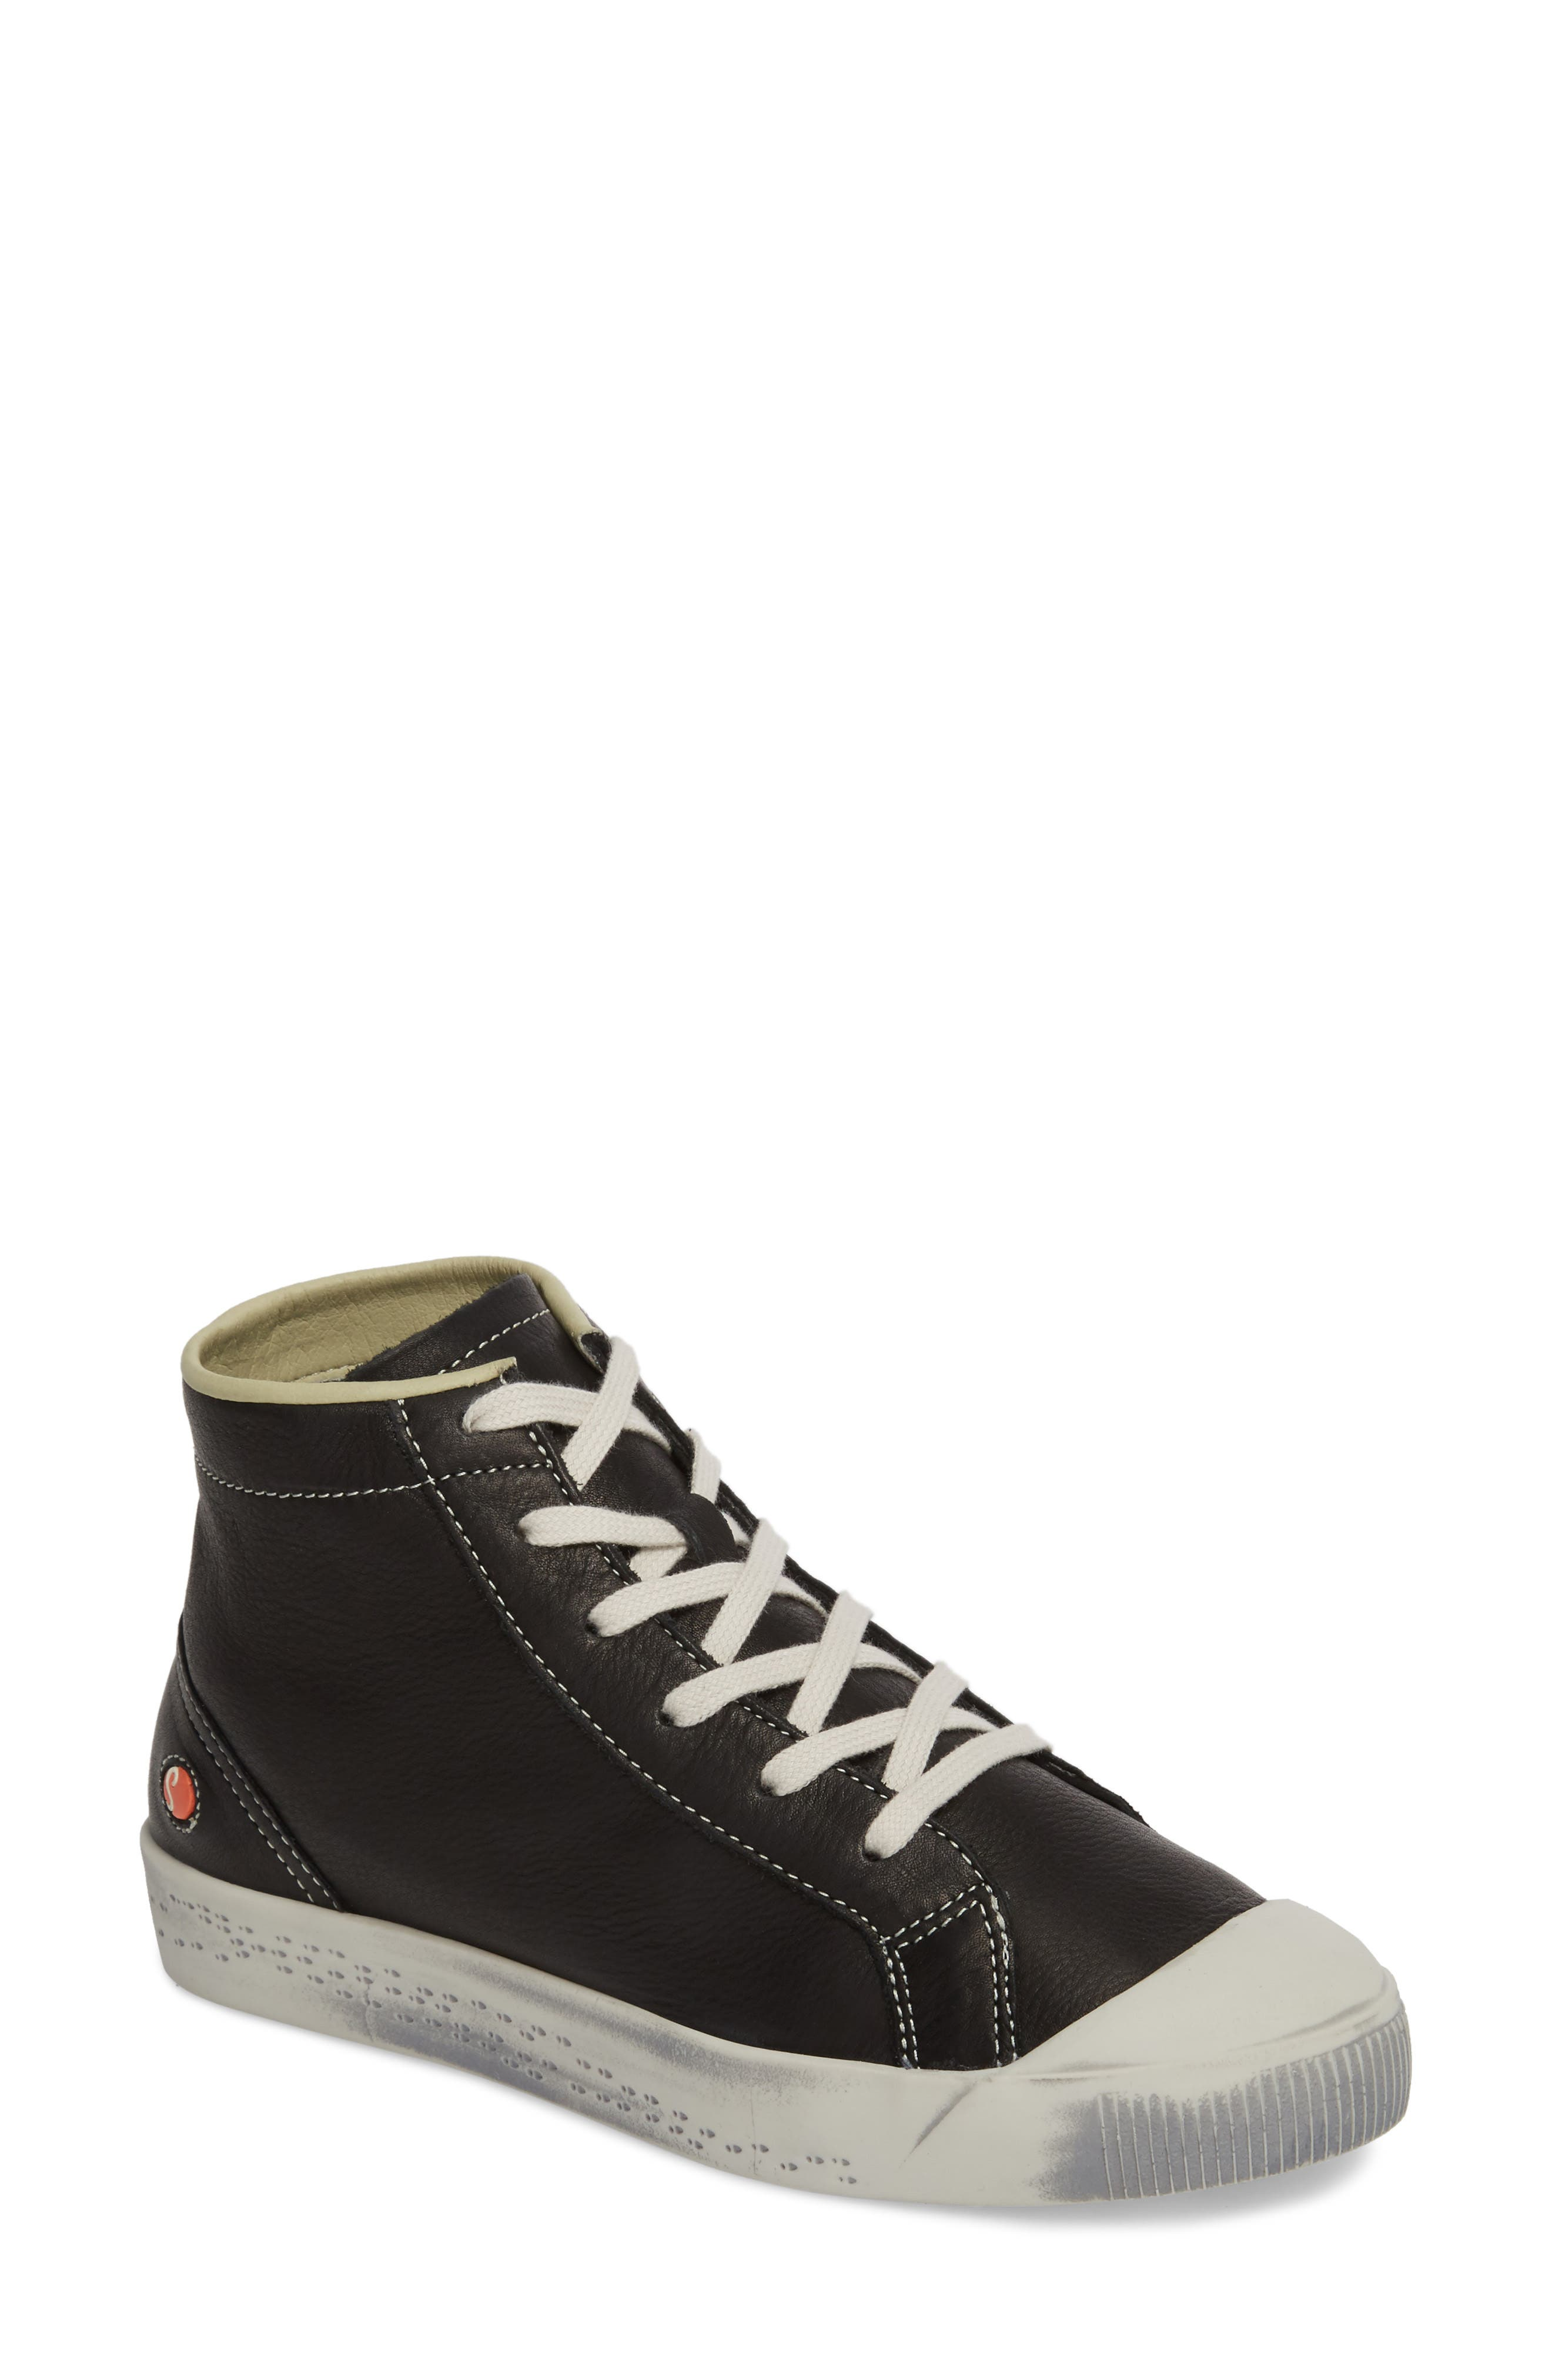 Kip High Top Sneaker,                         Main,                         color, Black Leather